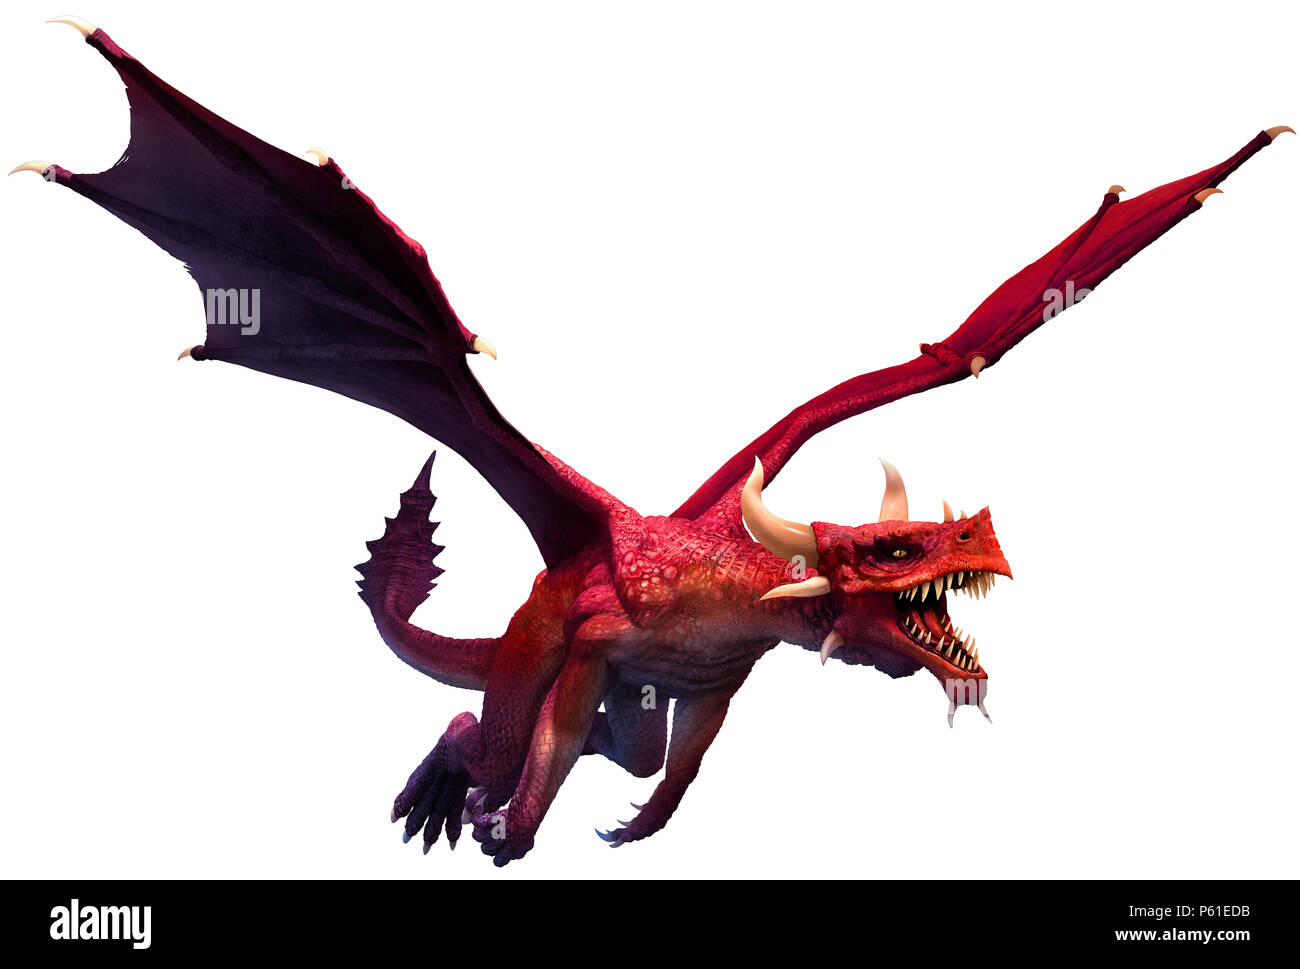 Red dragon 3D illustration - Stock Image